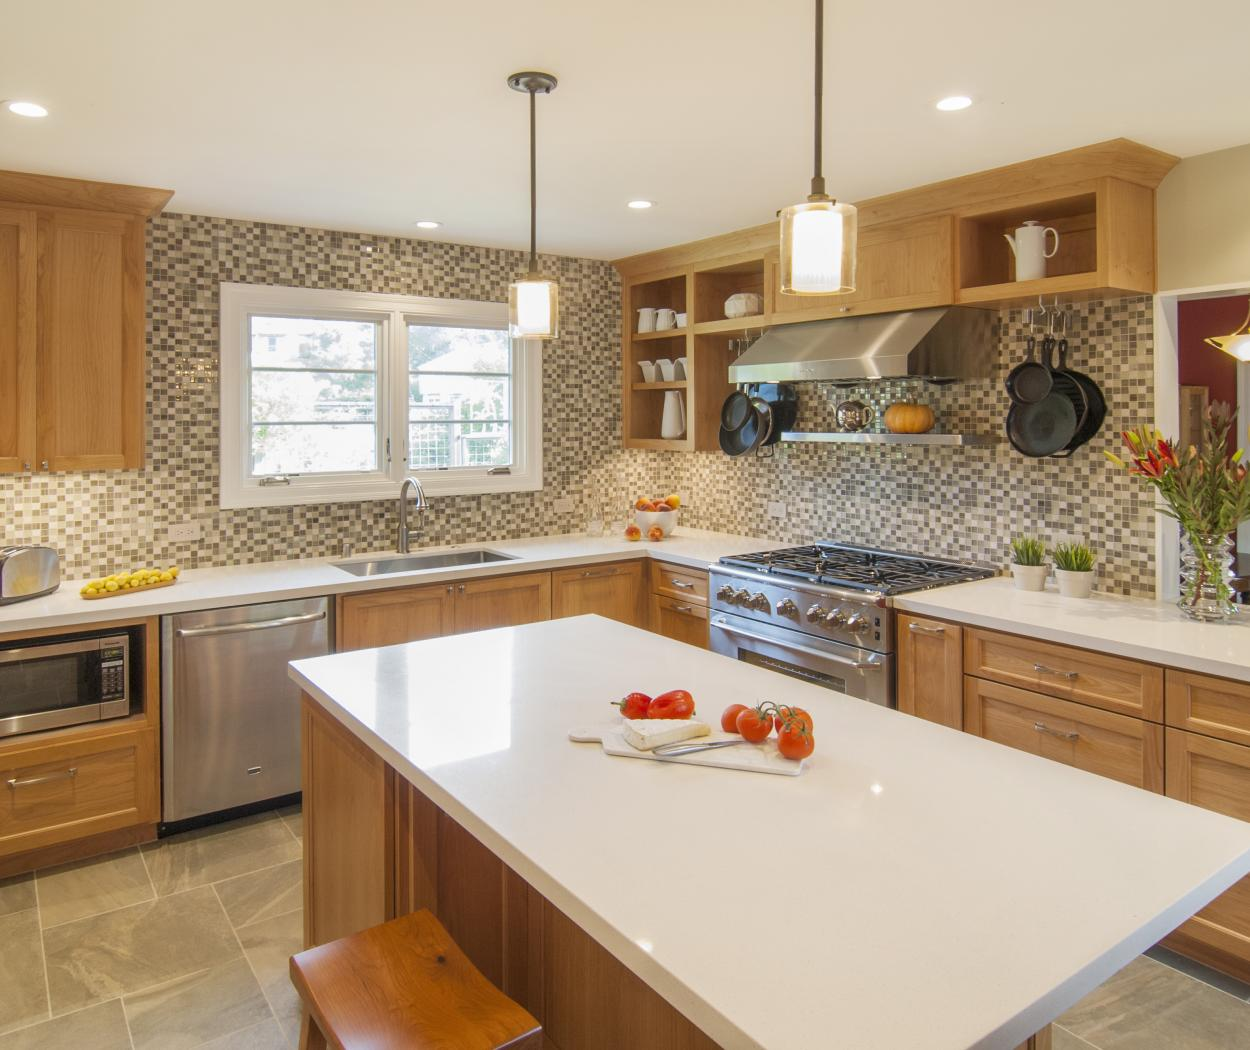 Transitional Stained Kitchen with Open Shelves, White Counter Tops, Stainless Steel Appliances and Hardware